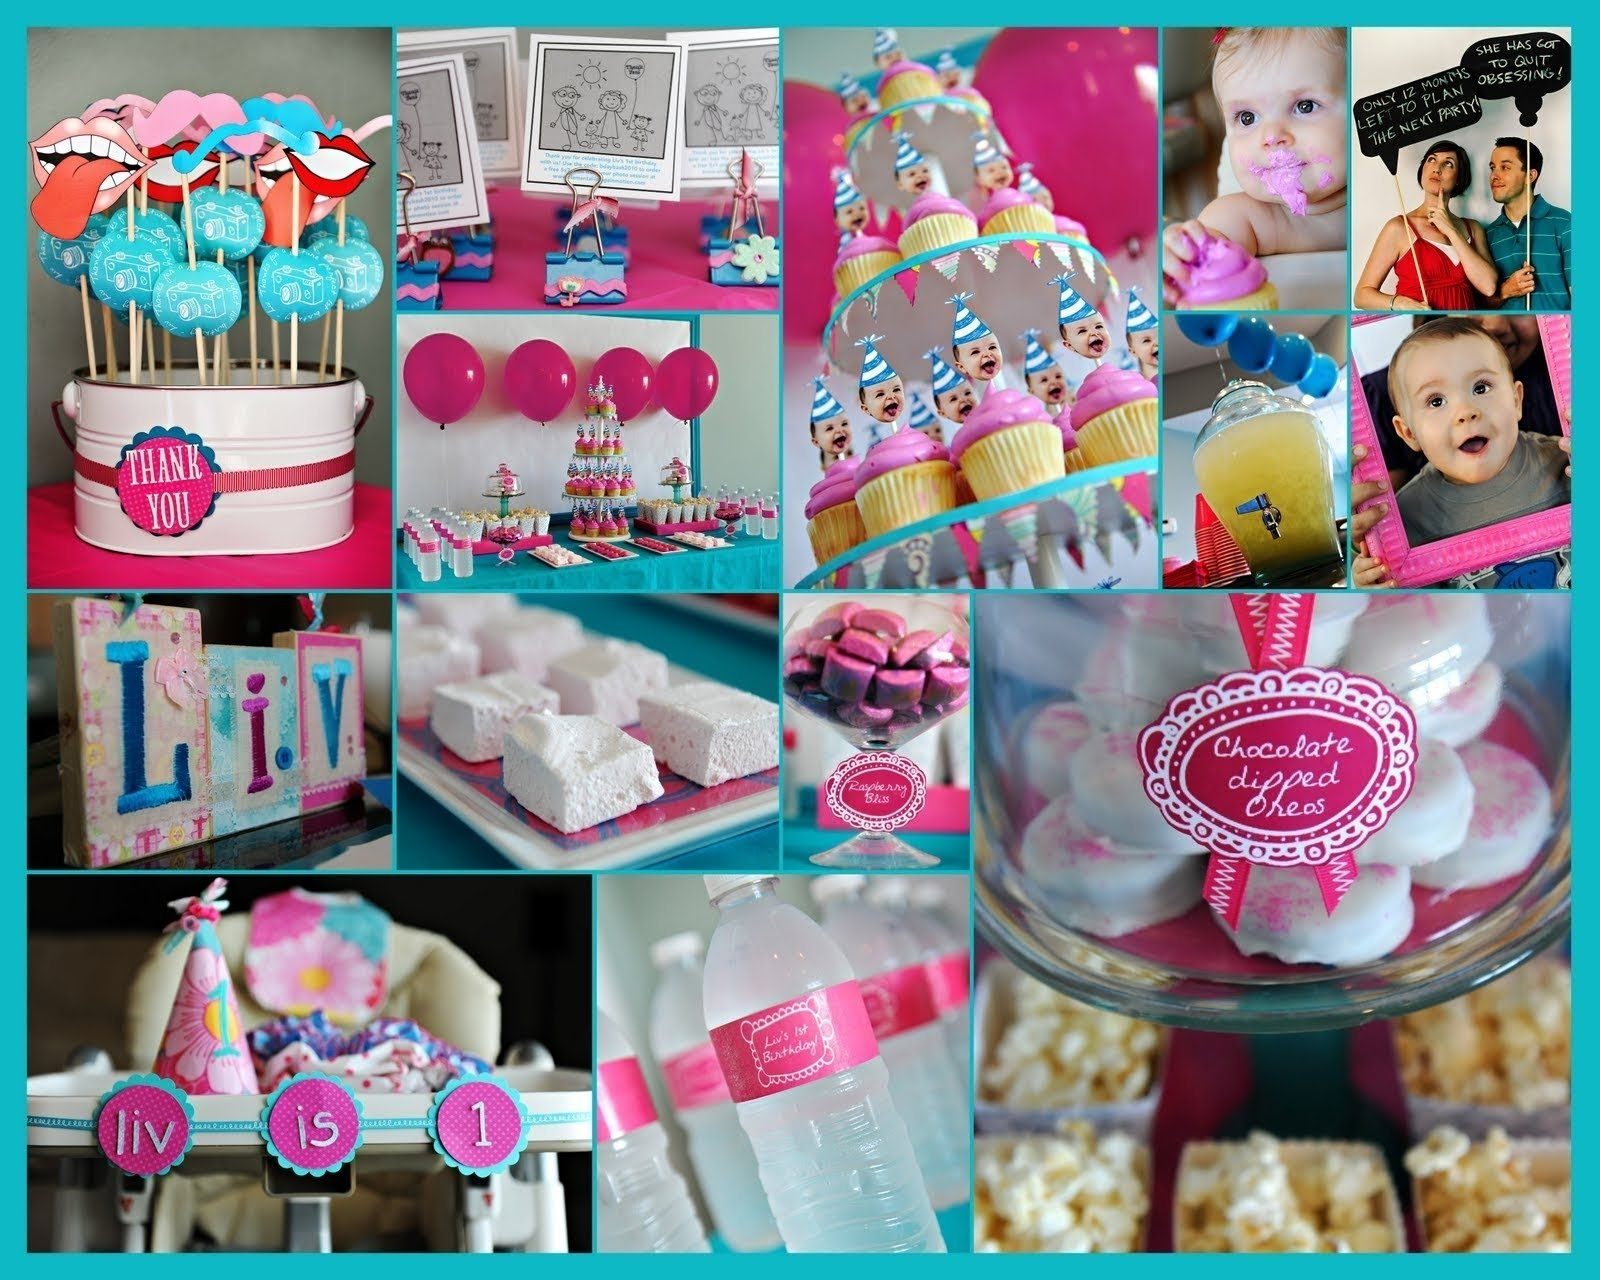 10 Stunning Cheap Kids Birthday Party Ideas first birthday party ideas 1st birthday party ideas kids 23 2021